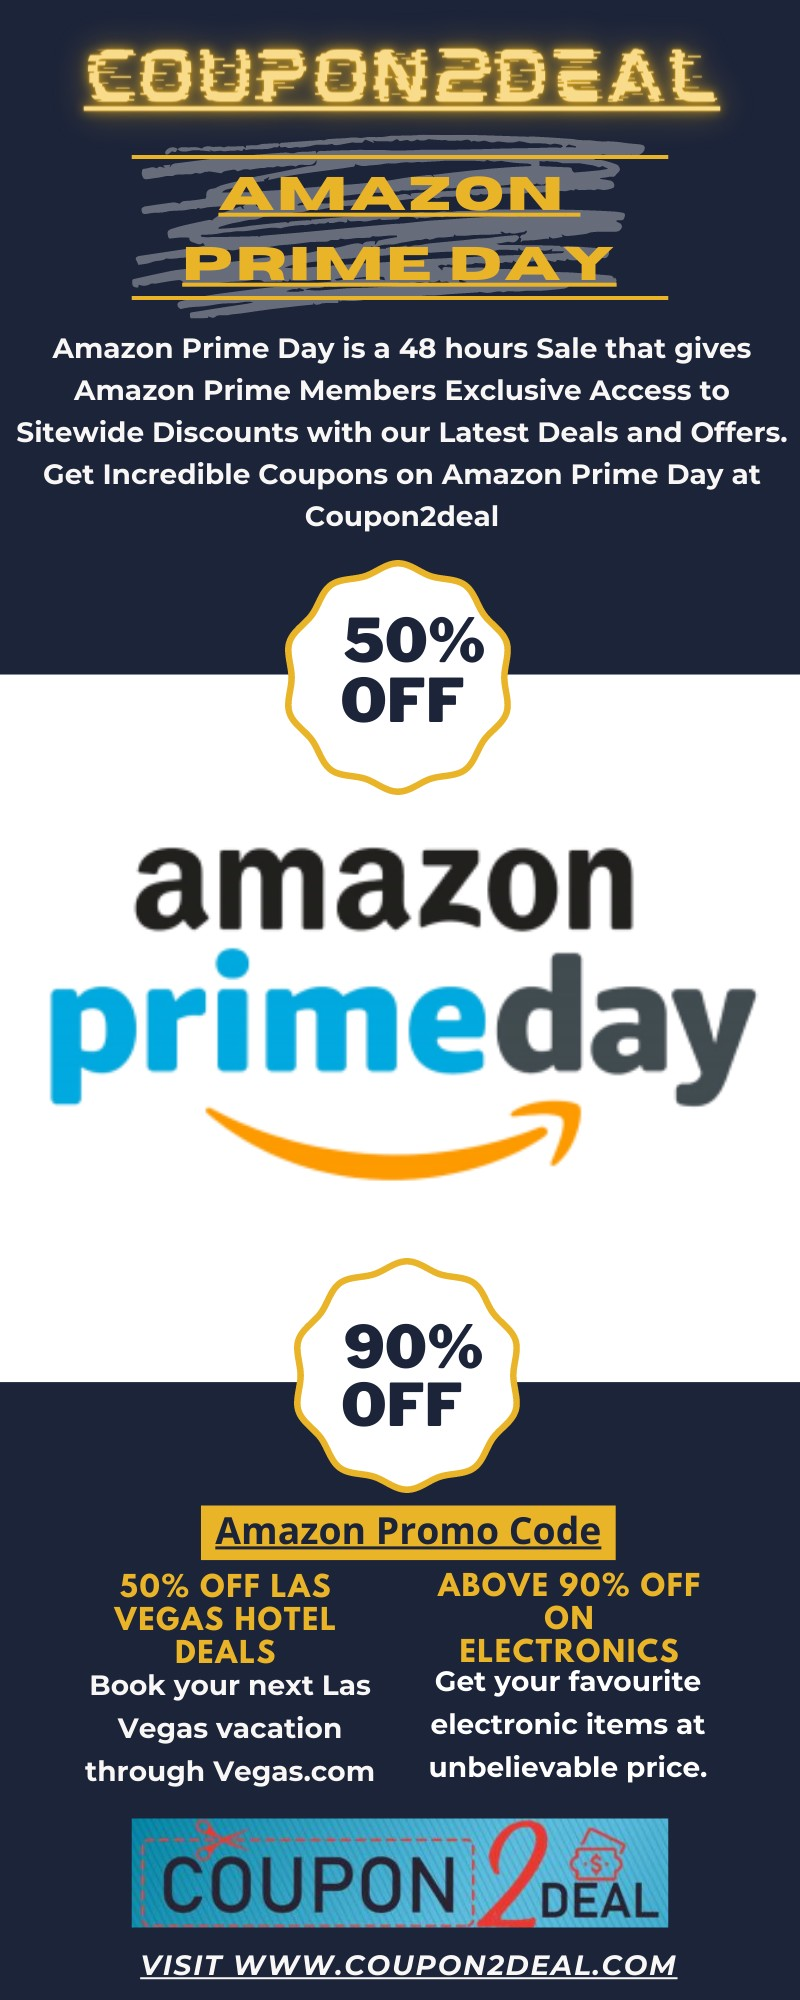 Celebrate Amazon Prime Day With Coupon2deal